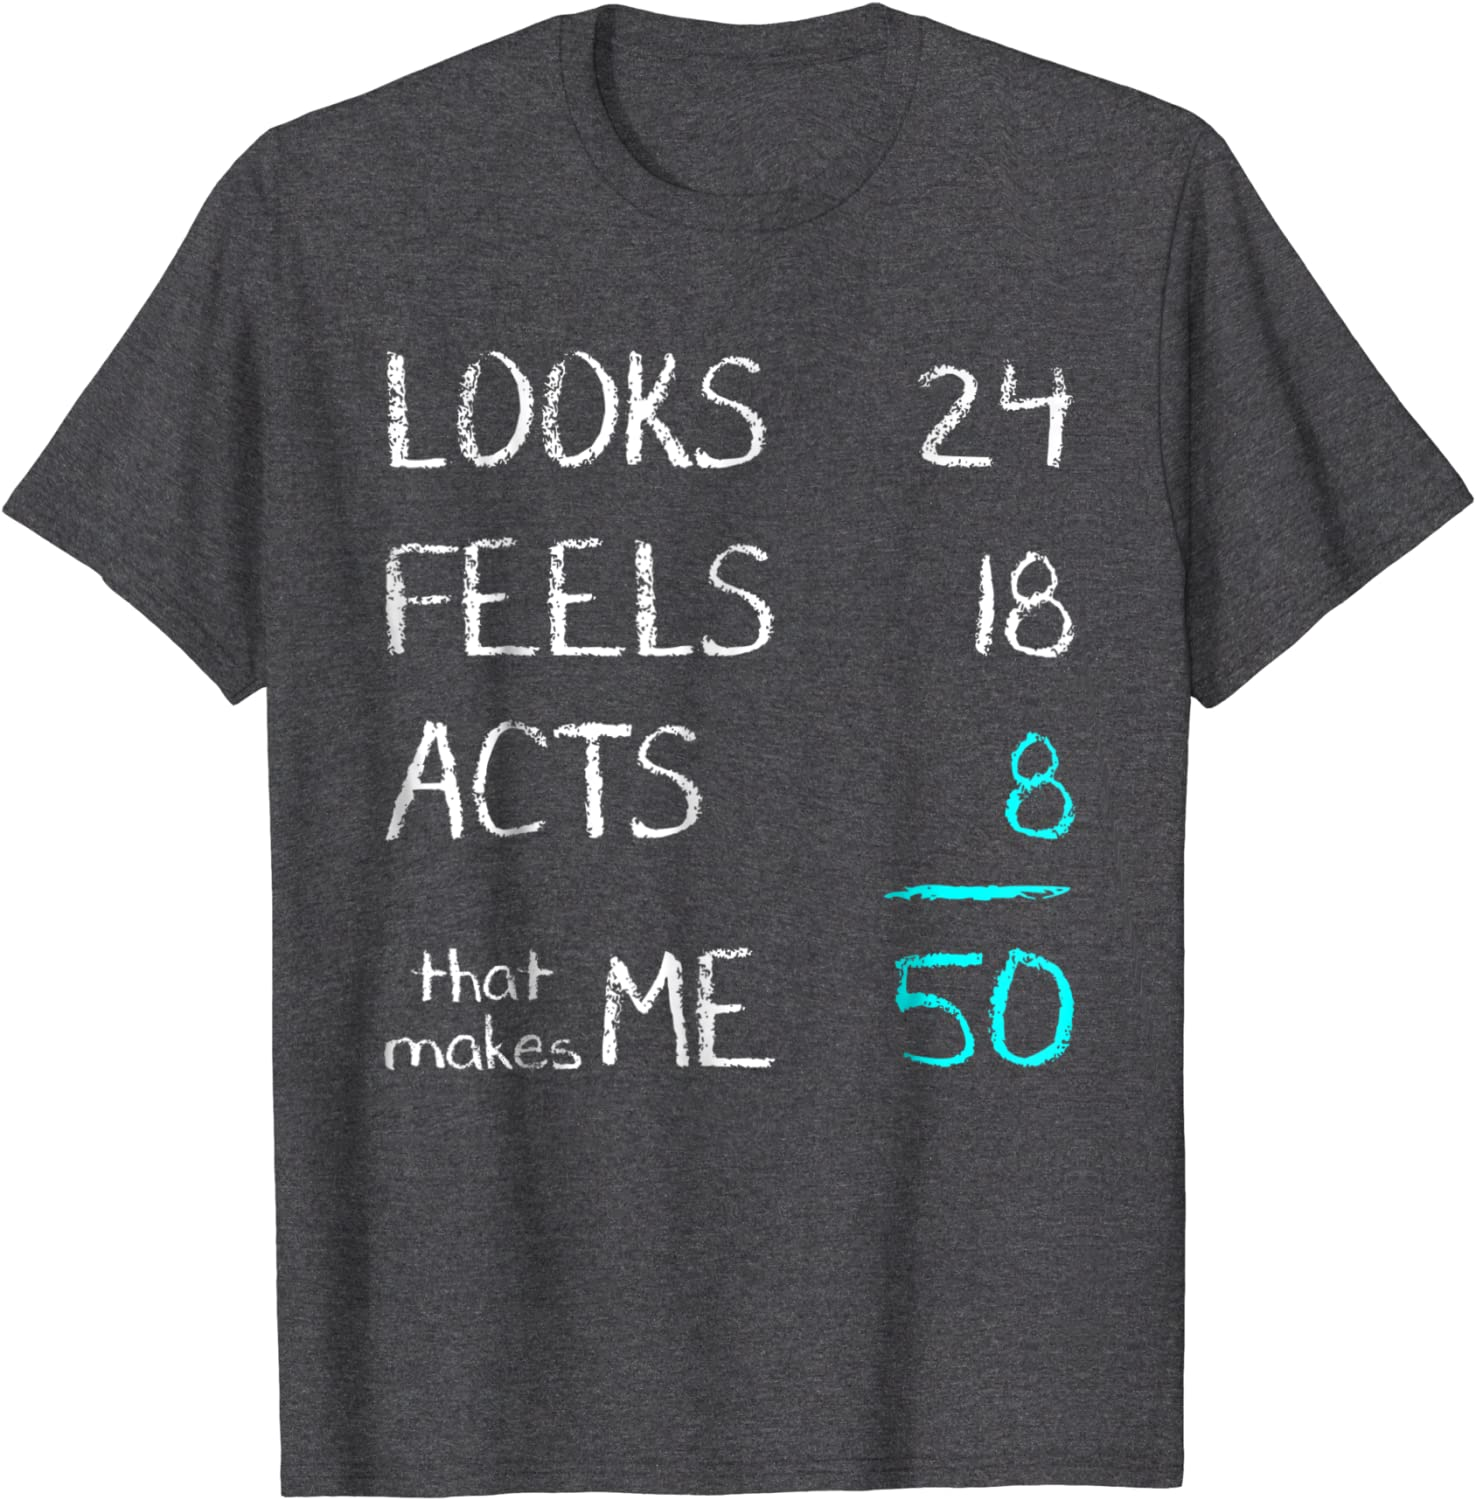 94th birthday gift gift for 94th Birthday Party 94th birthday tshirt Looks Feels Acts That Makes Me 94 94th birthday gifts for men